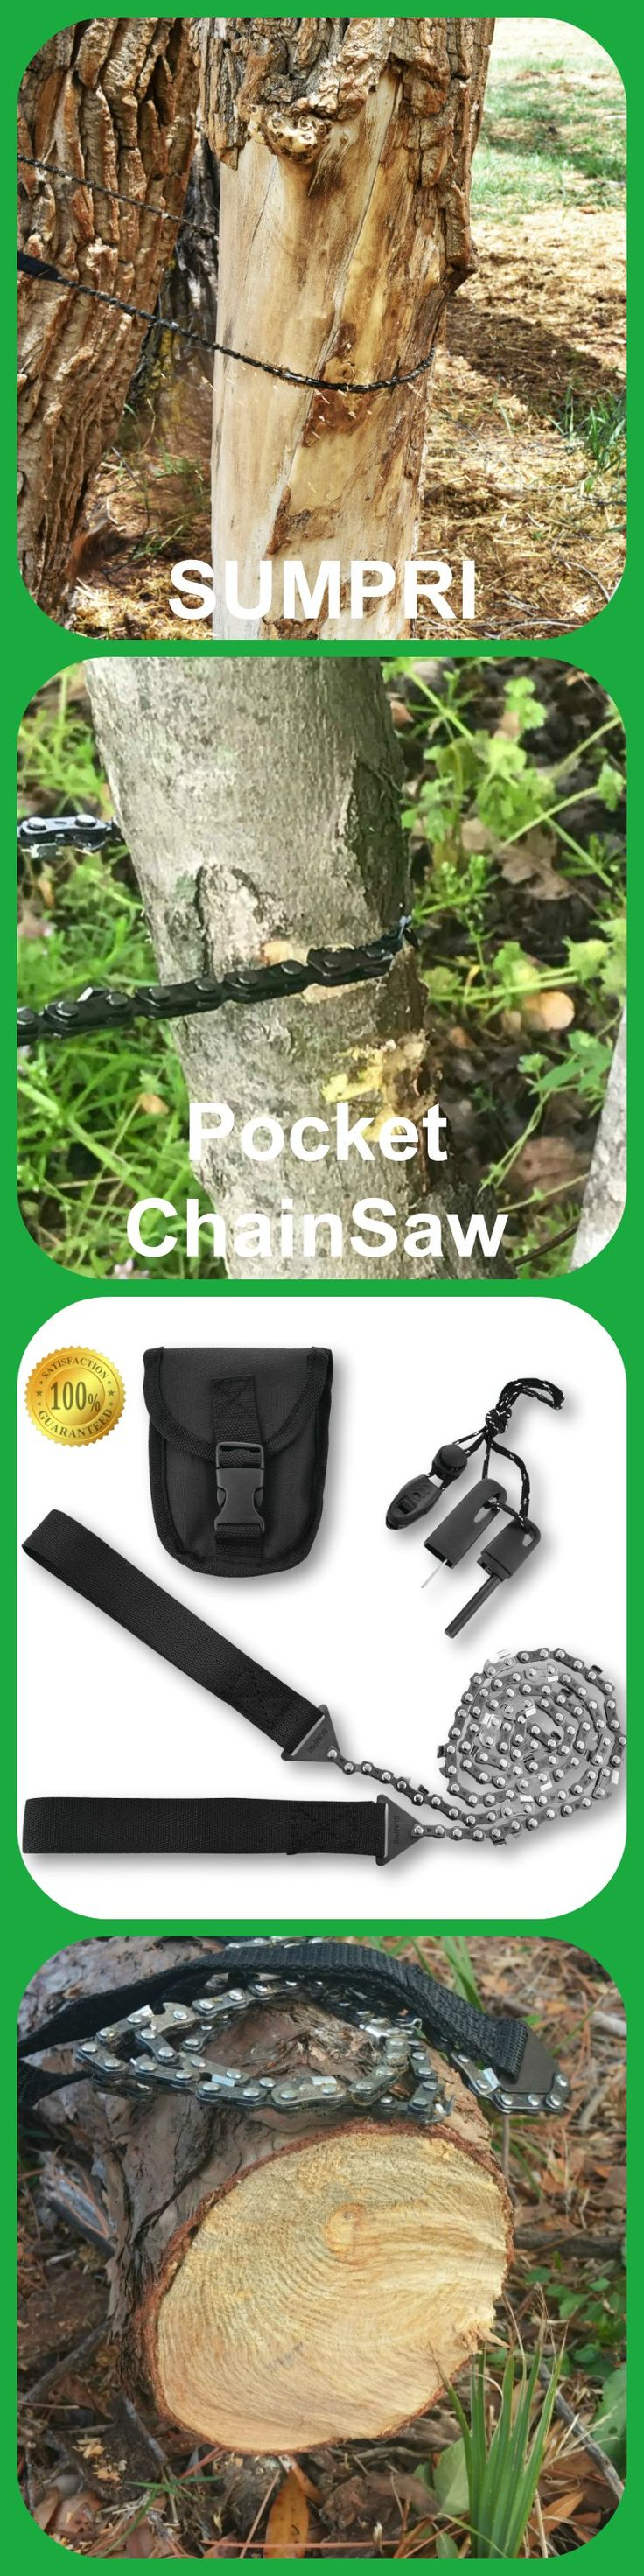 SUMPRI Camping Gear Survival Pocket Chainsaw & Fire Starter Kit - 36 Inch Compact Hand Saw & Magnesium Spark Fire Rod -Best For Hiking, Survival & Emergency Equipment, Now on Amazon.com #sumpri #pocket #chainsaw #camping #gear #fire #starter #rod #logs #garden #log #tree #boyscout #saw #handsaw #campfire #smores #smore